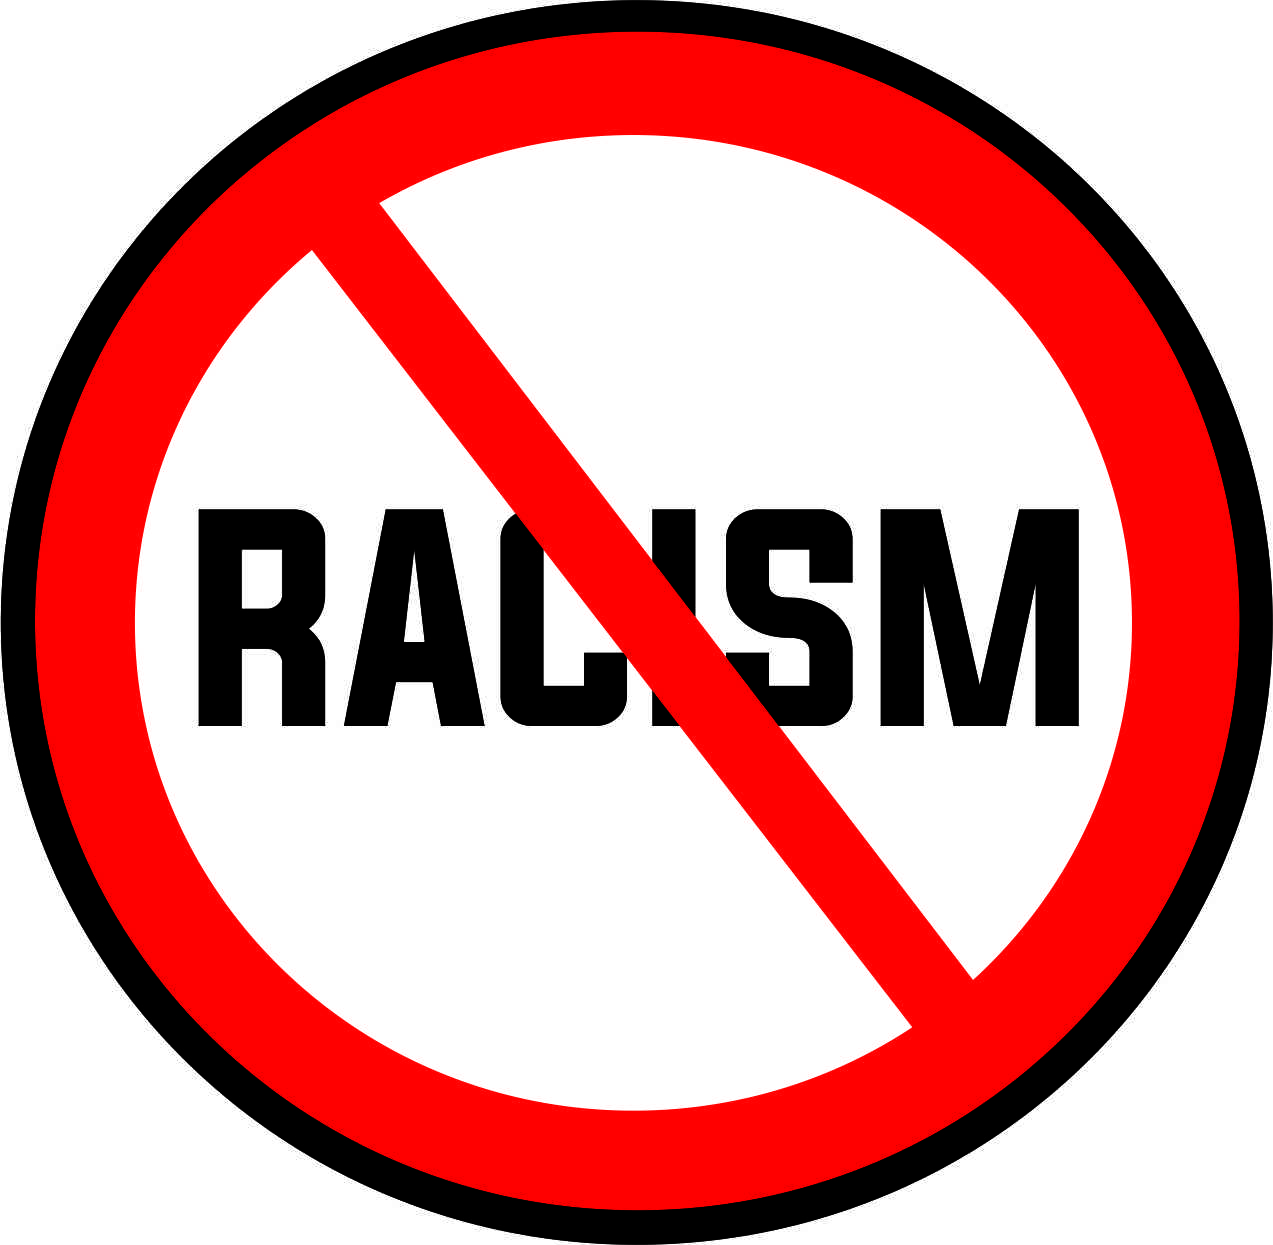 - RACISM - MUSLIM JUDICIAL COUNCIL DECLARATION ON RACISM